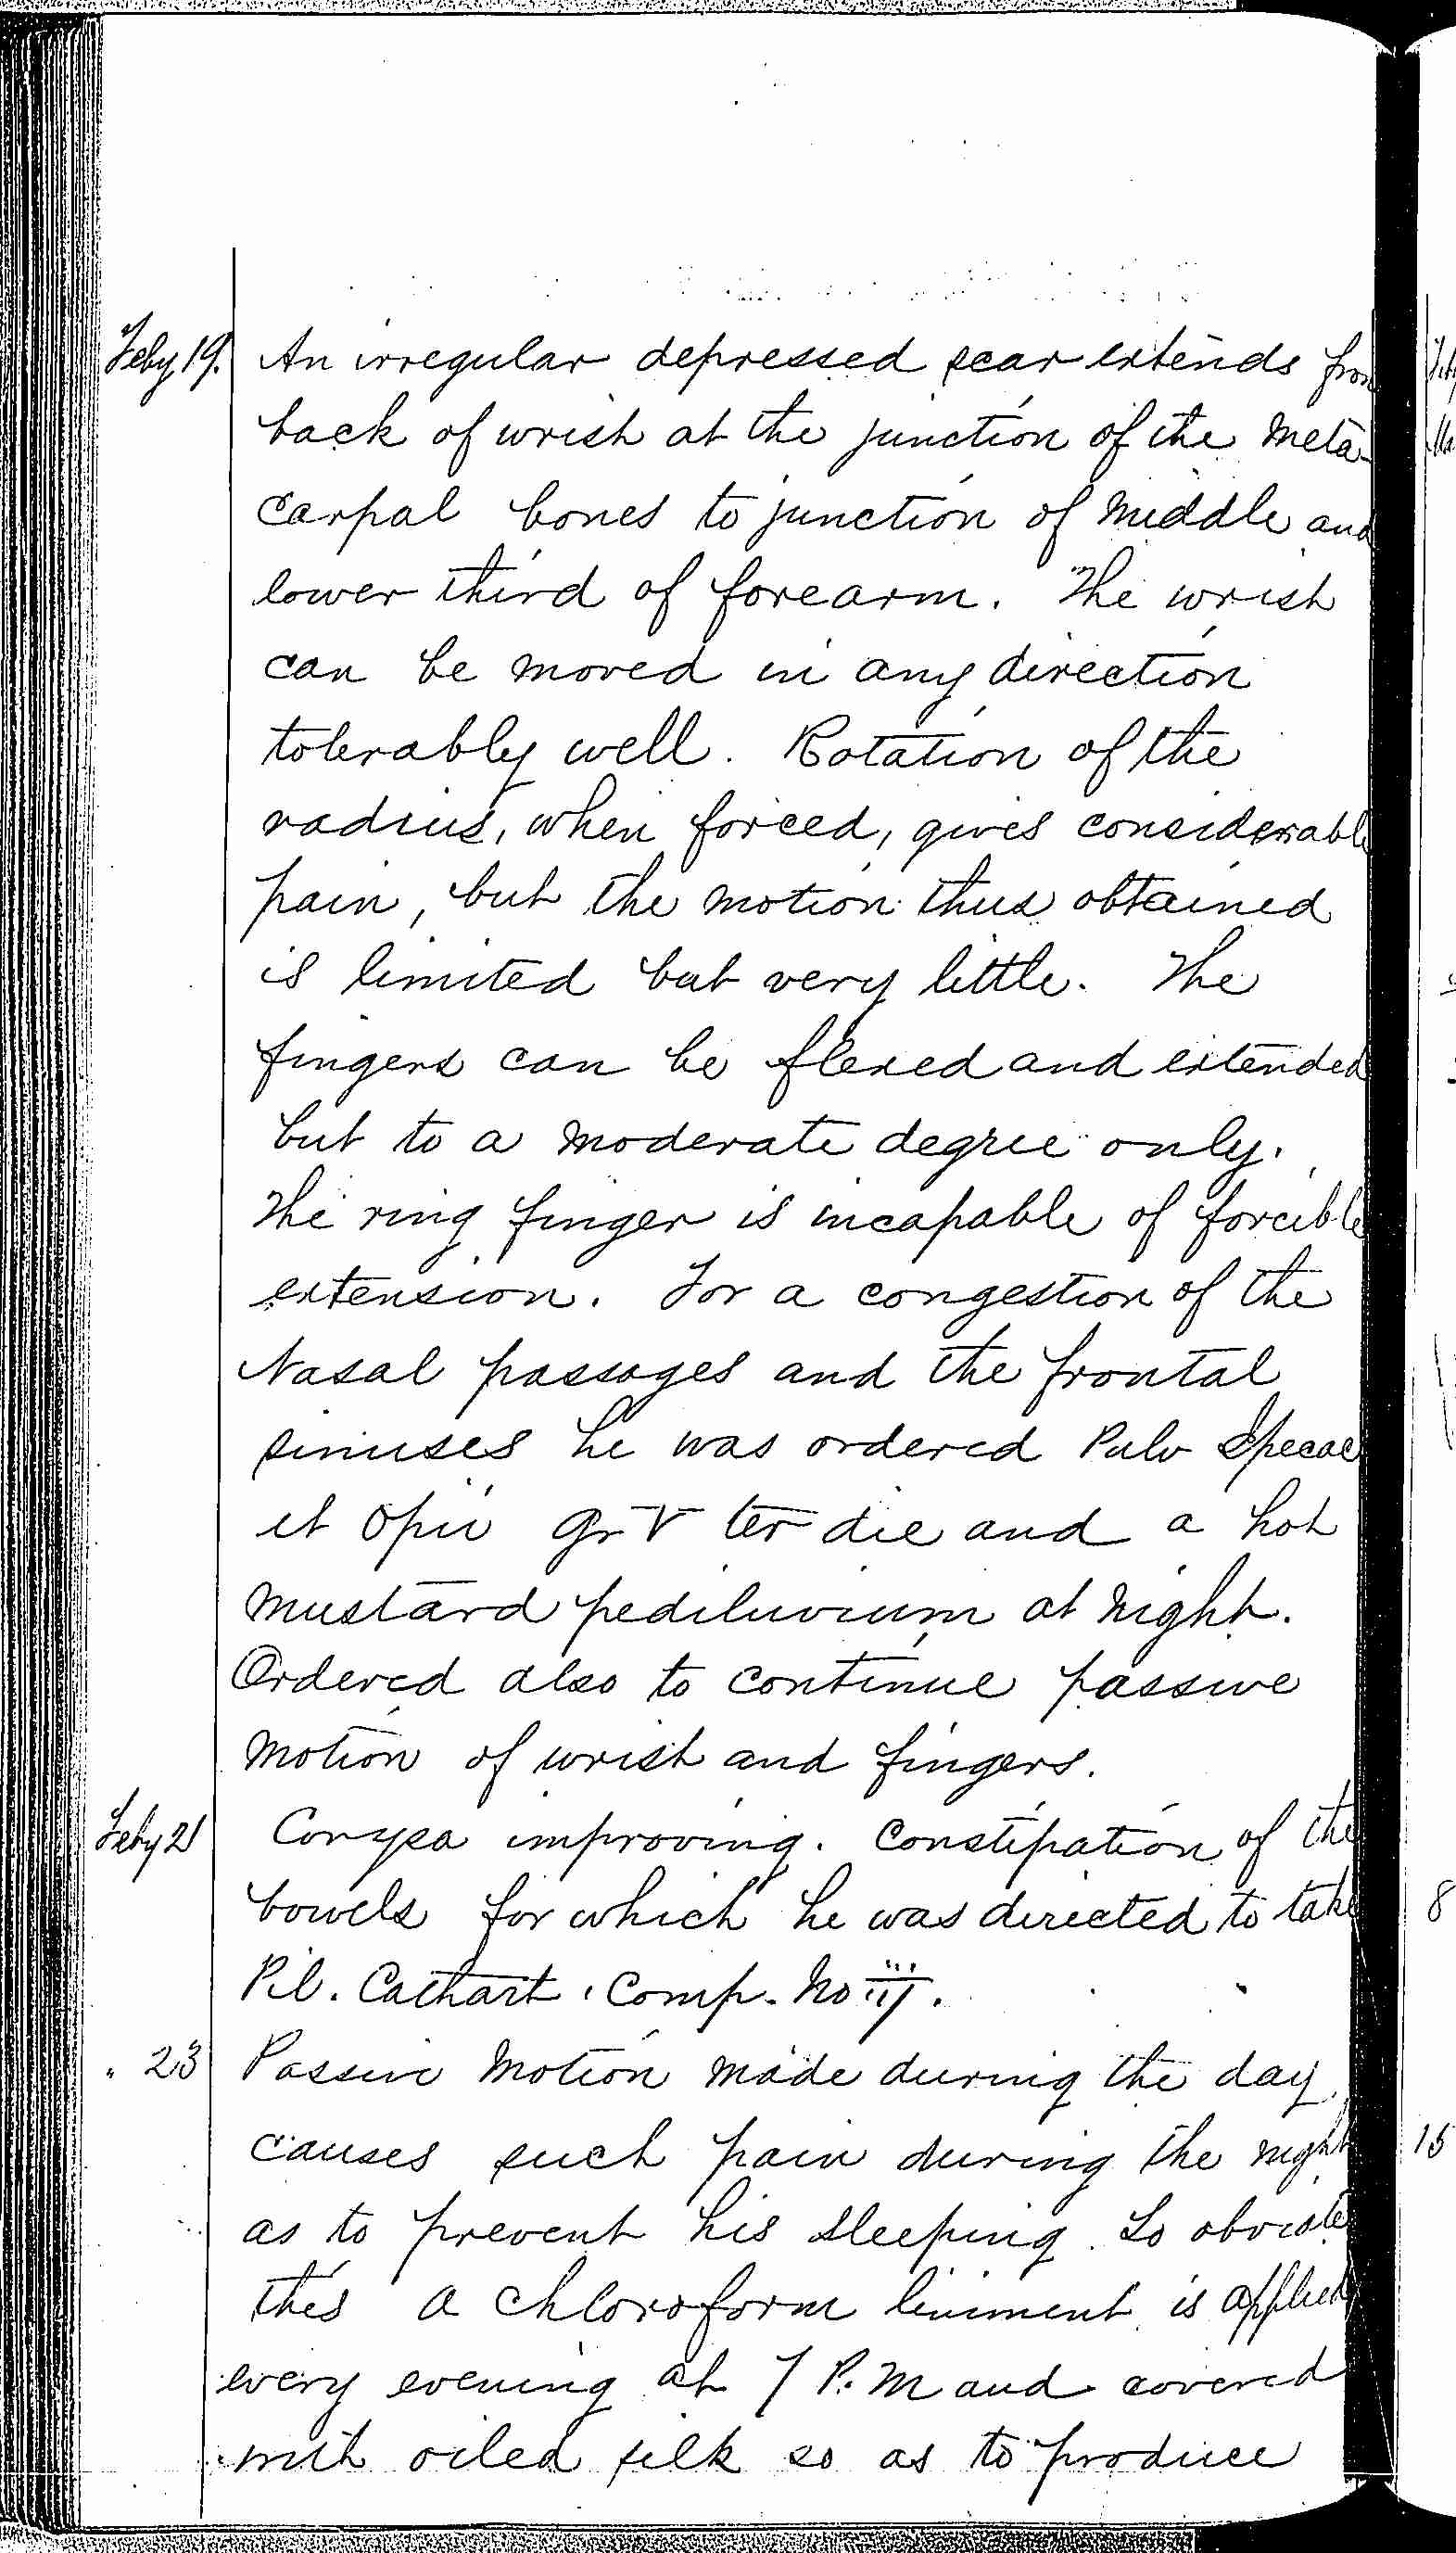 Entry for James Lockrey (page 2 of 5) in the log Hospital Tickets and Case Papers - Naval Hospital - Washington, D.C. - 1868-69